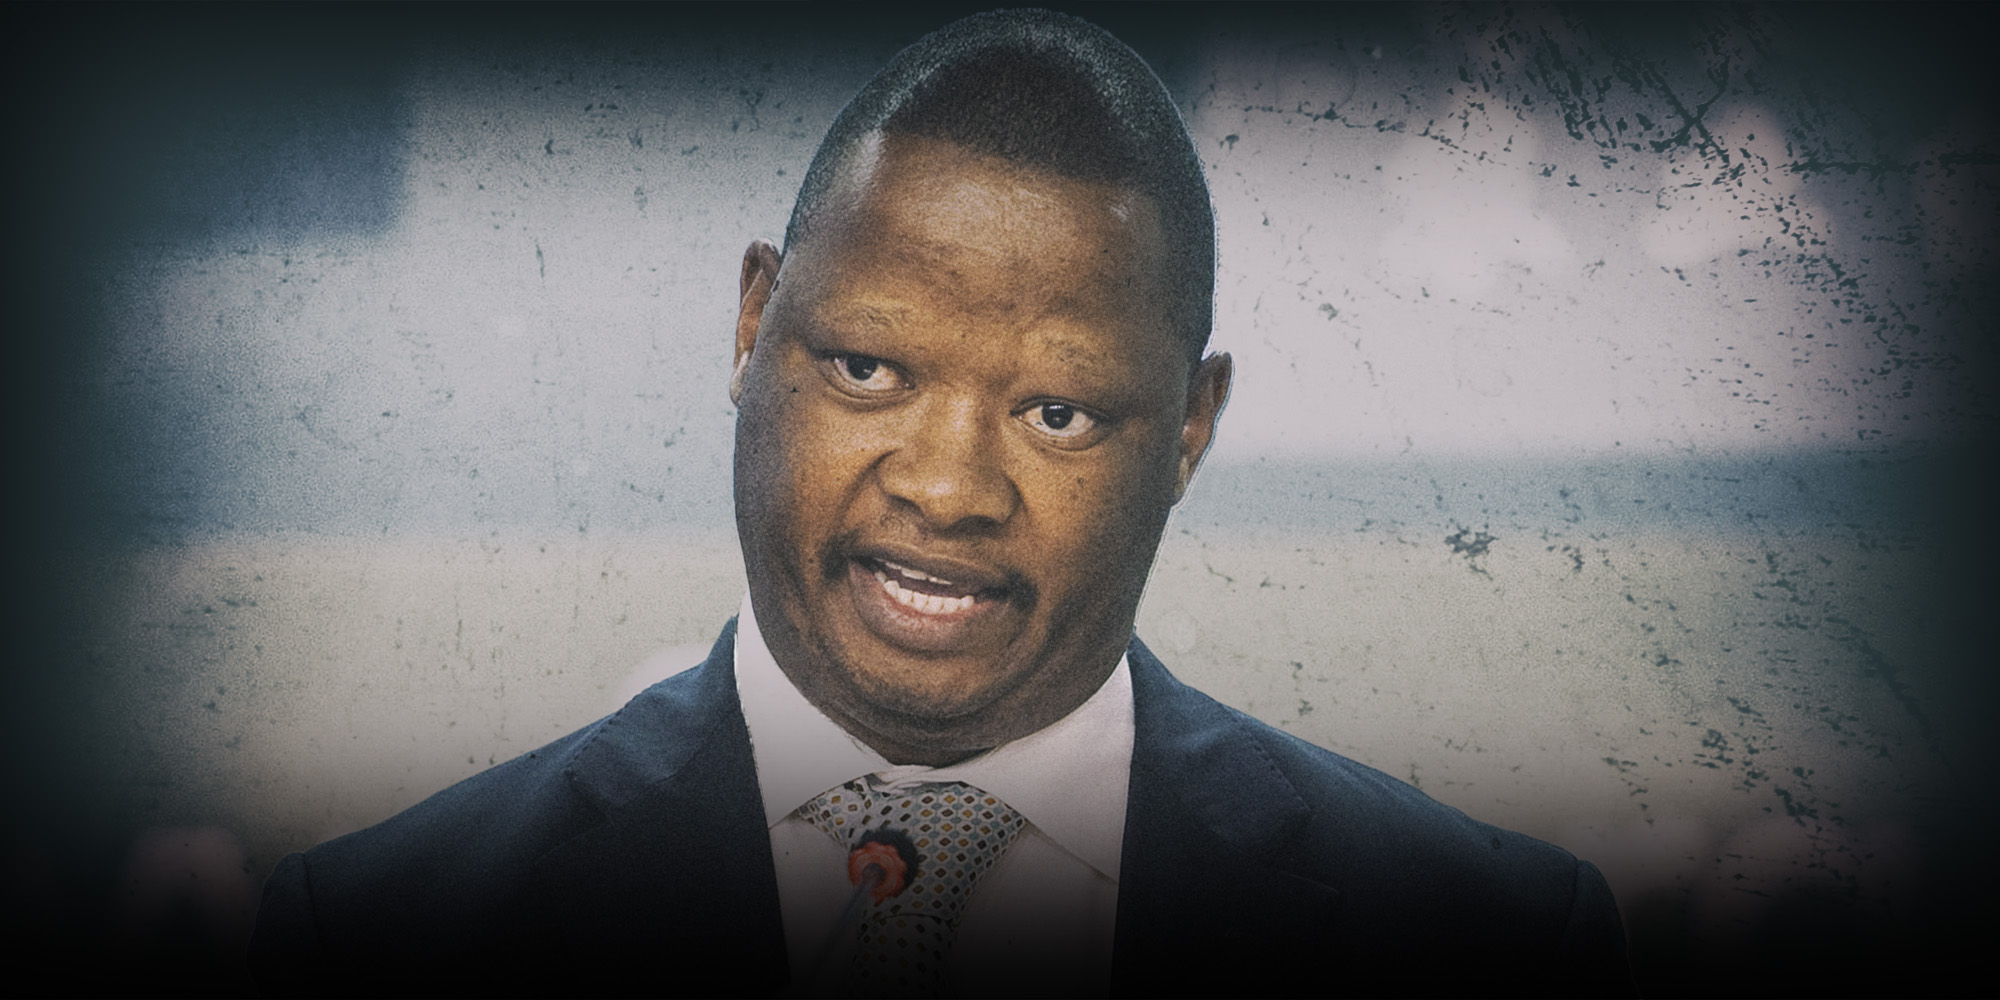 PARLIAMENT: The recommended summary dismissal of its secretary, Gengezi Mgidlana, parliamentary processes and potential potholes